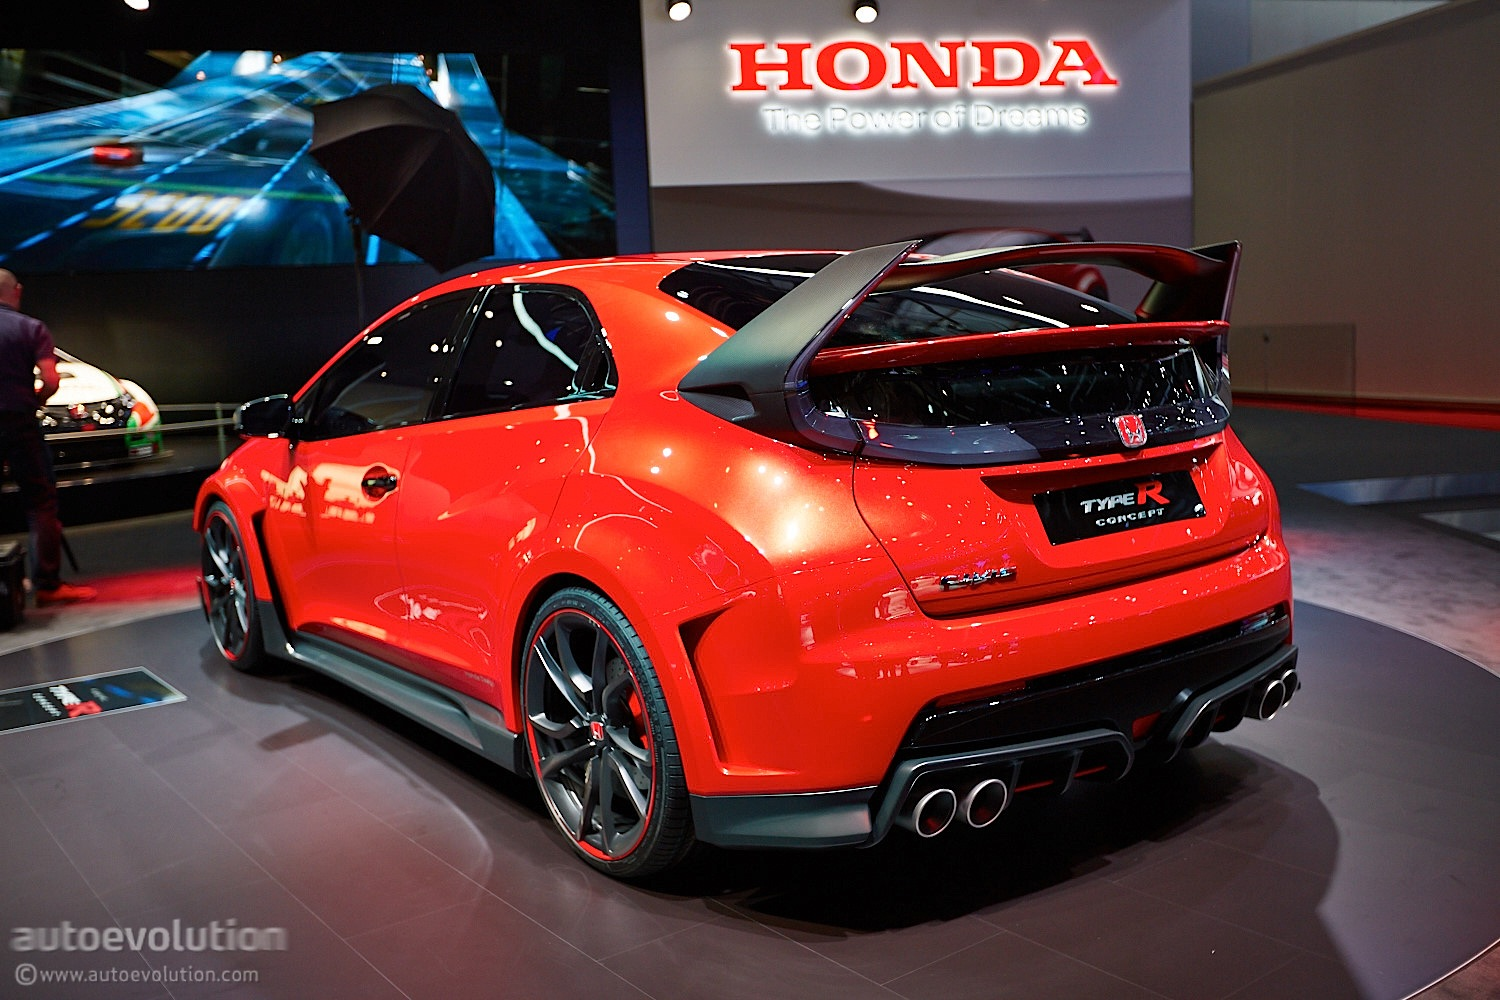 Image Result For Honda Type R For Salea